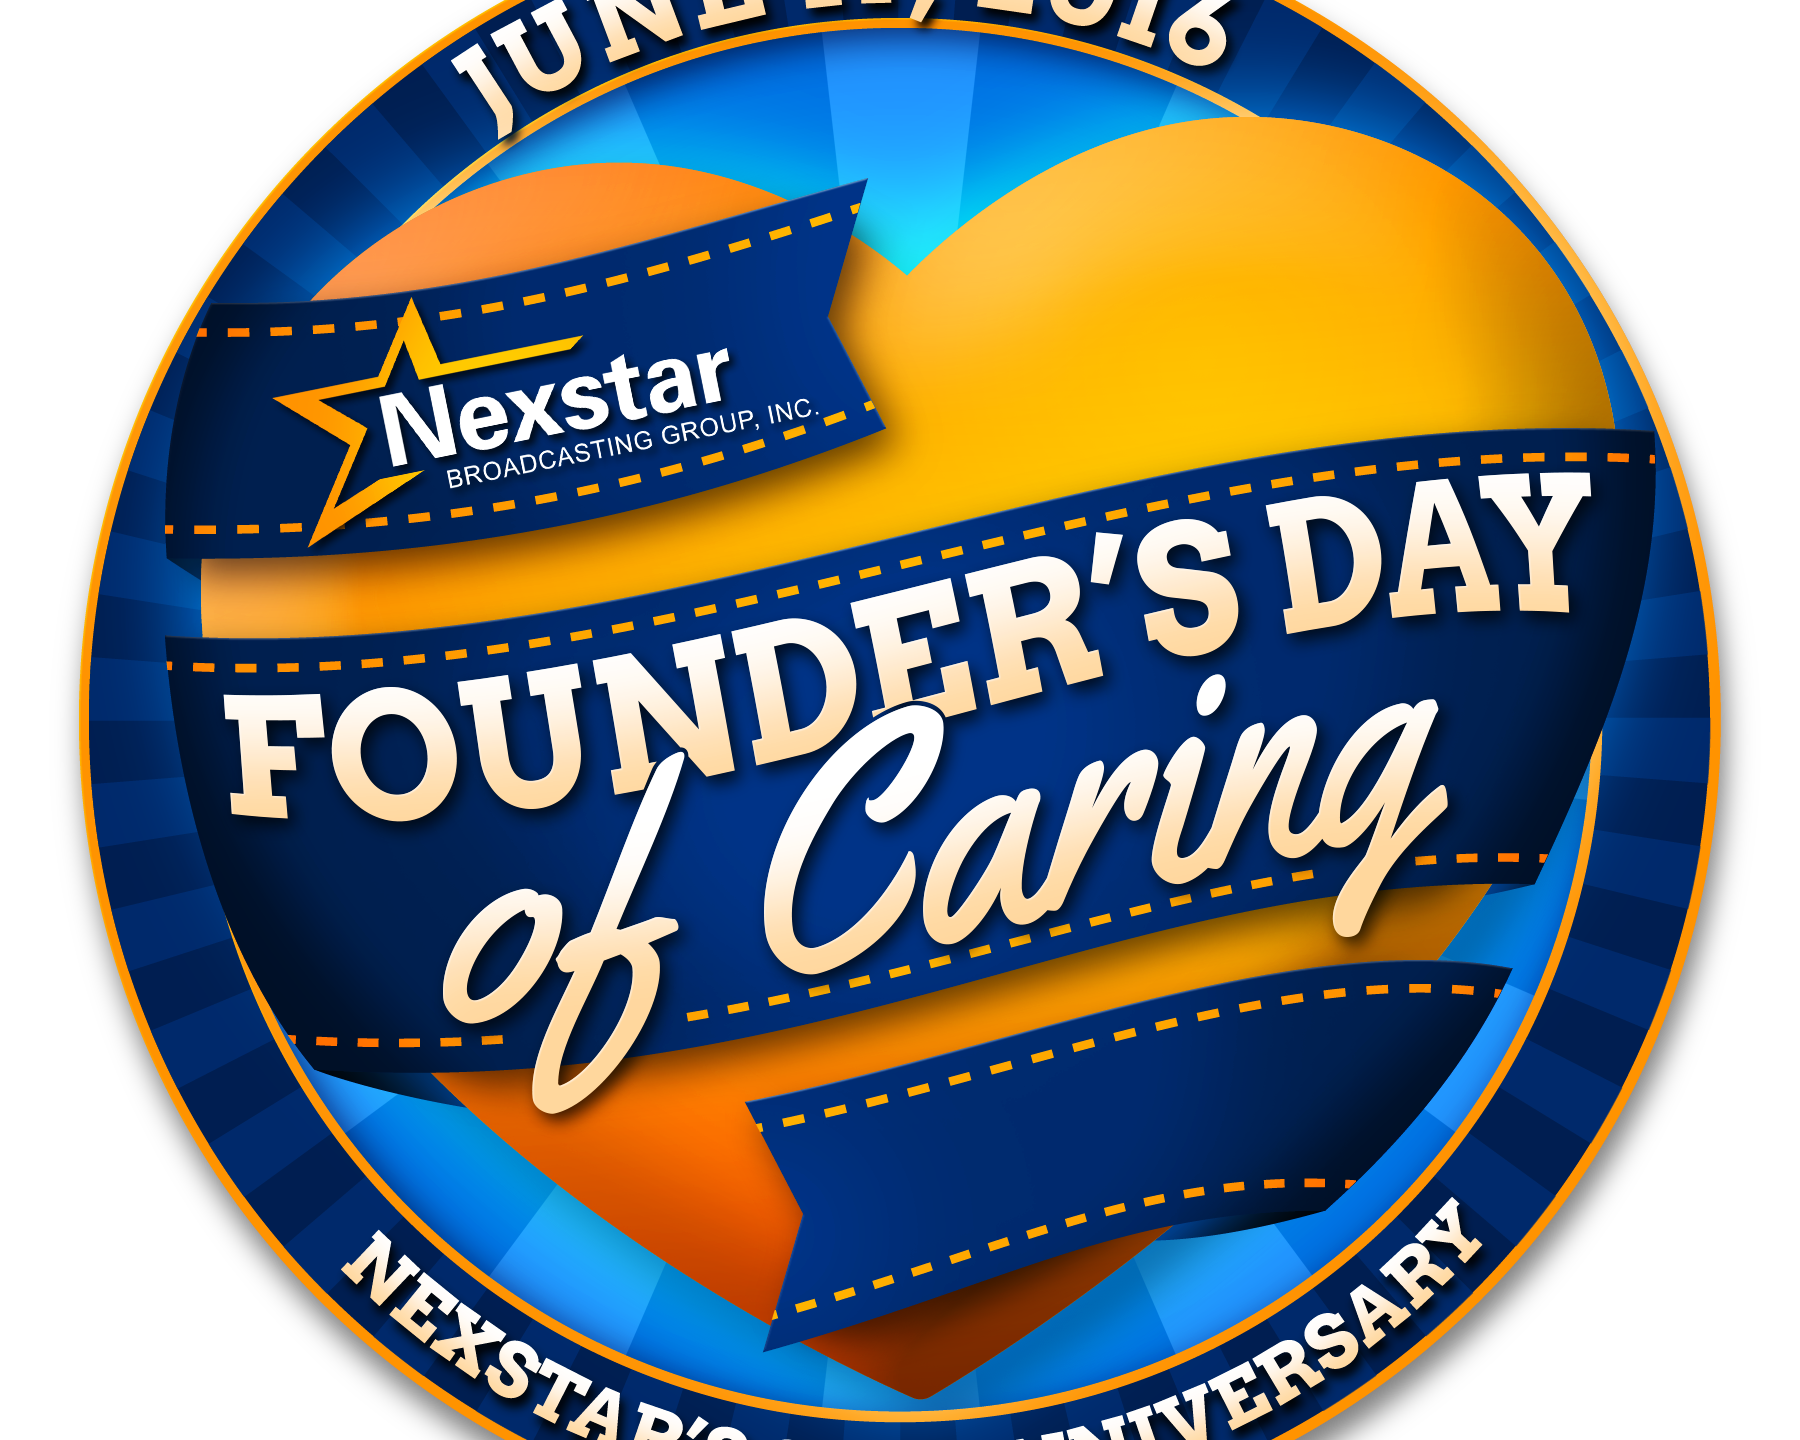 FoundersDayOfCaring_logo_blank_1466192363369.png